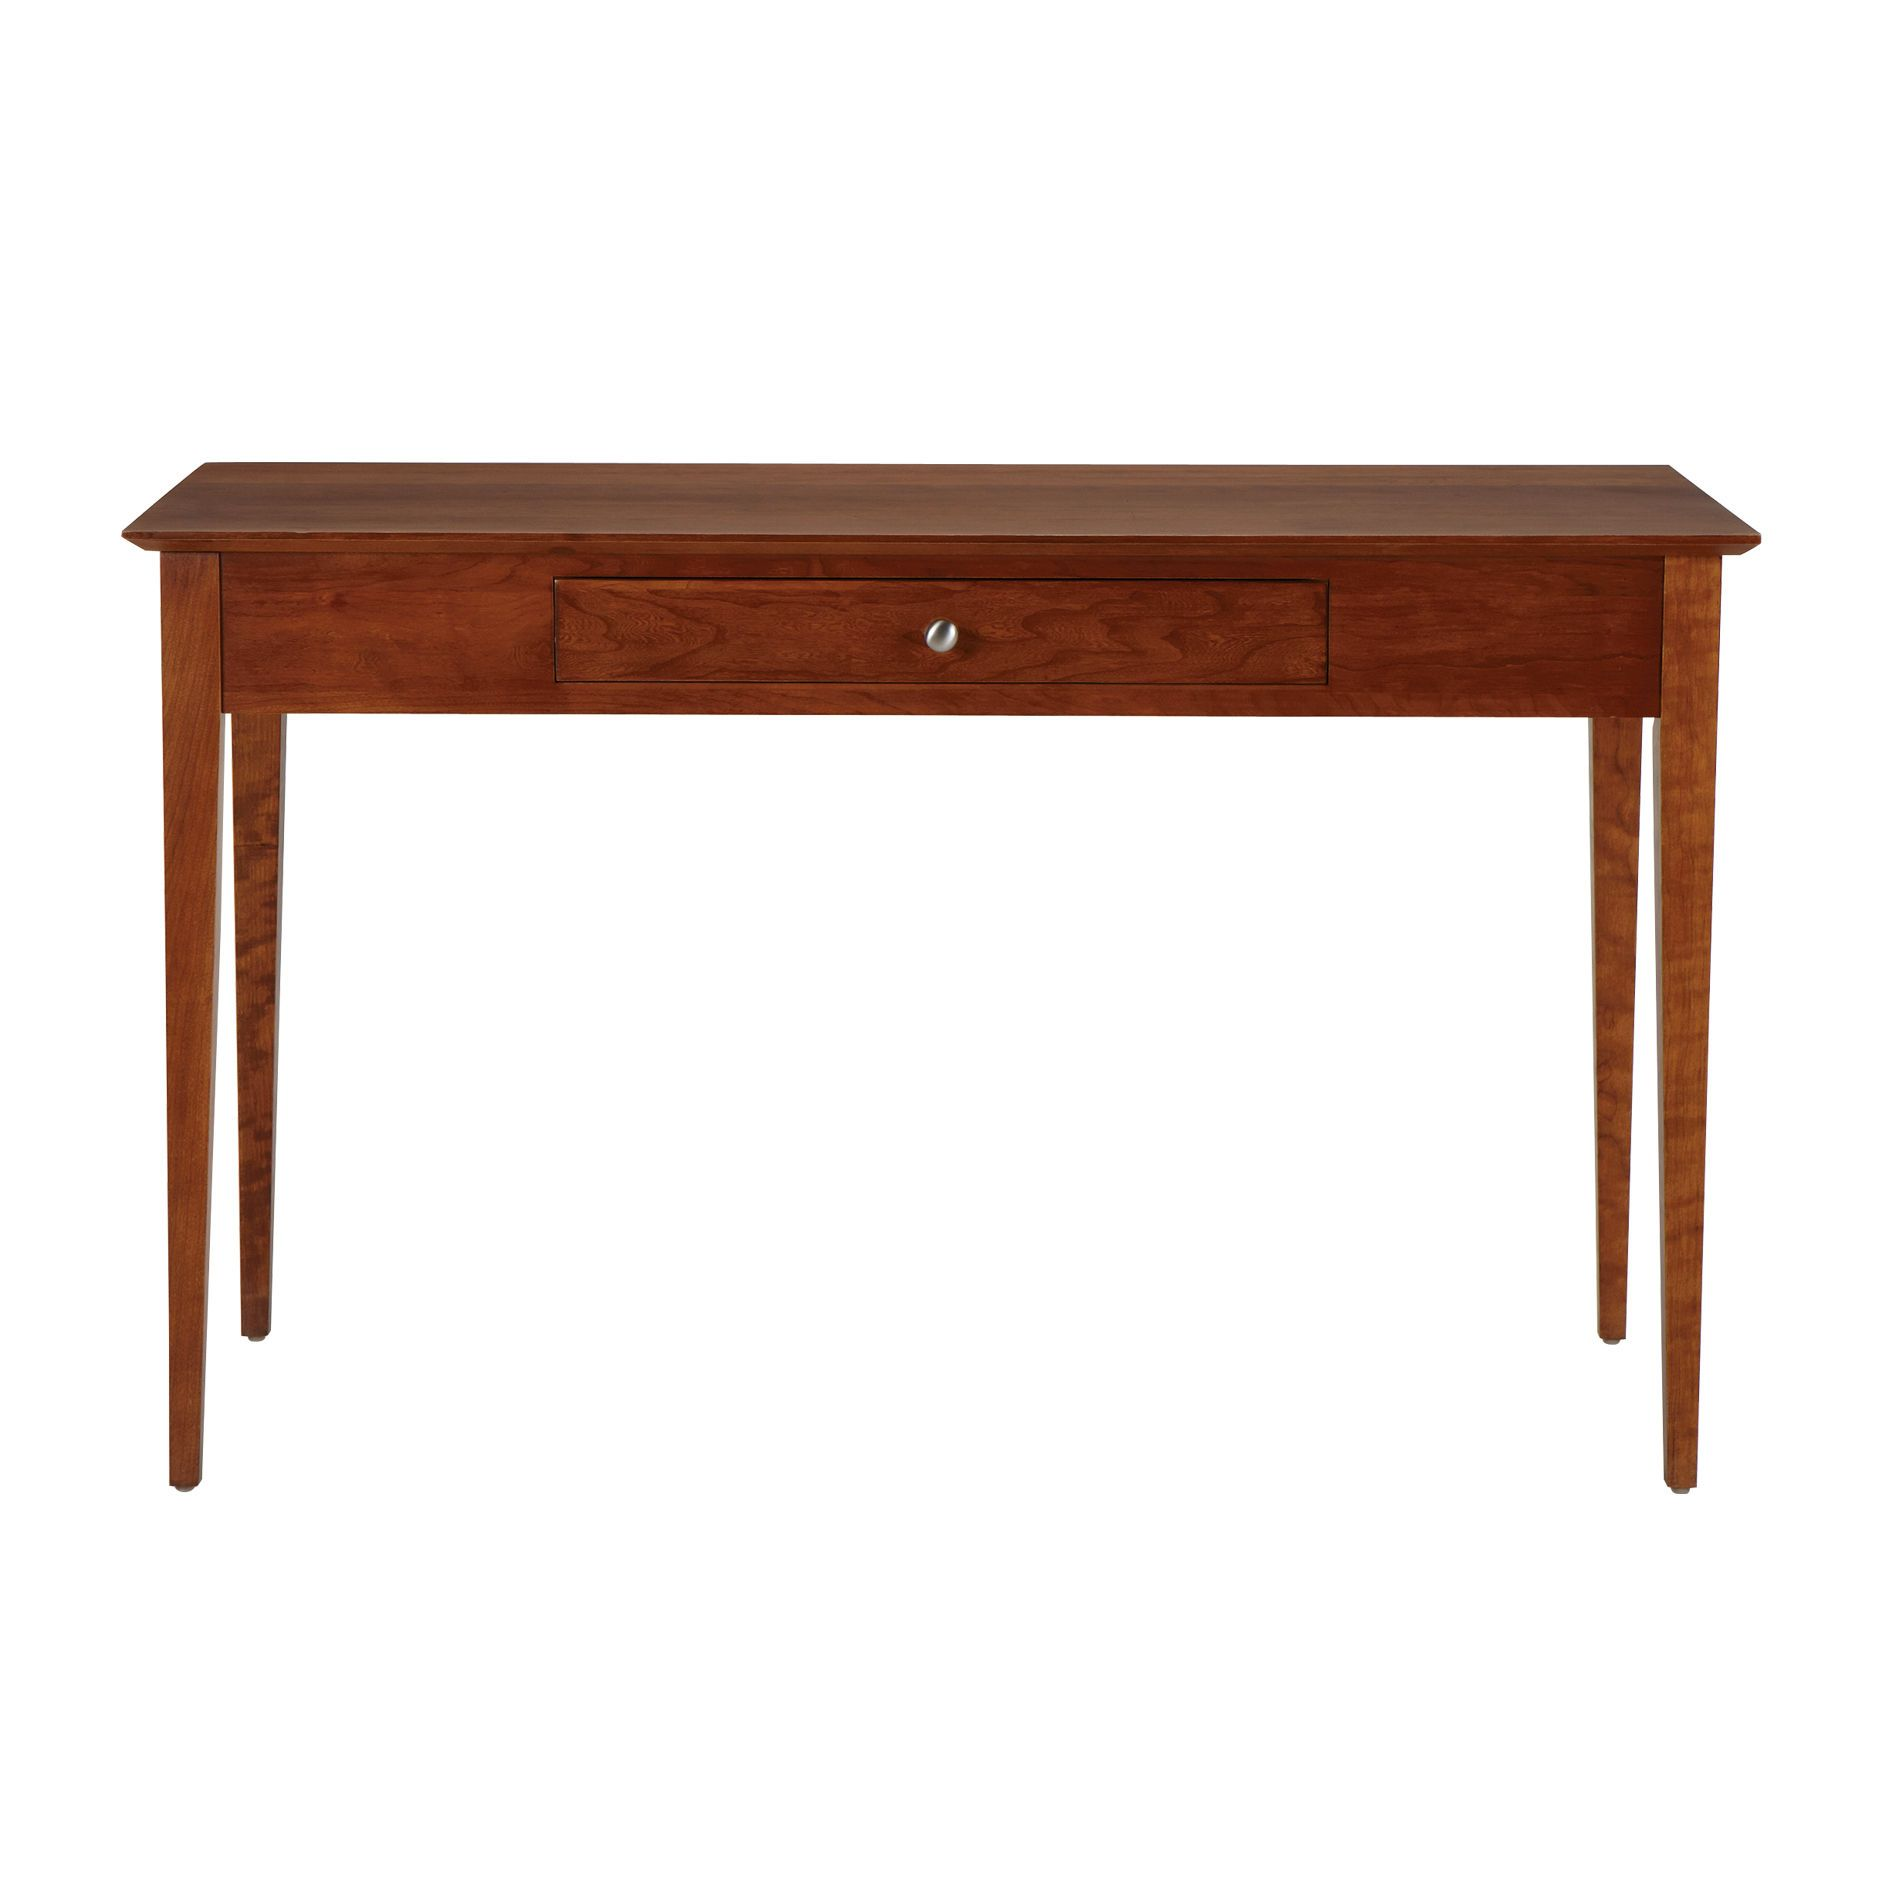 Rowan Sofa Table Desk Ethan Allen Us Desks Desk